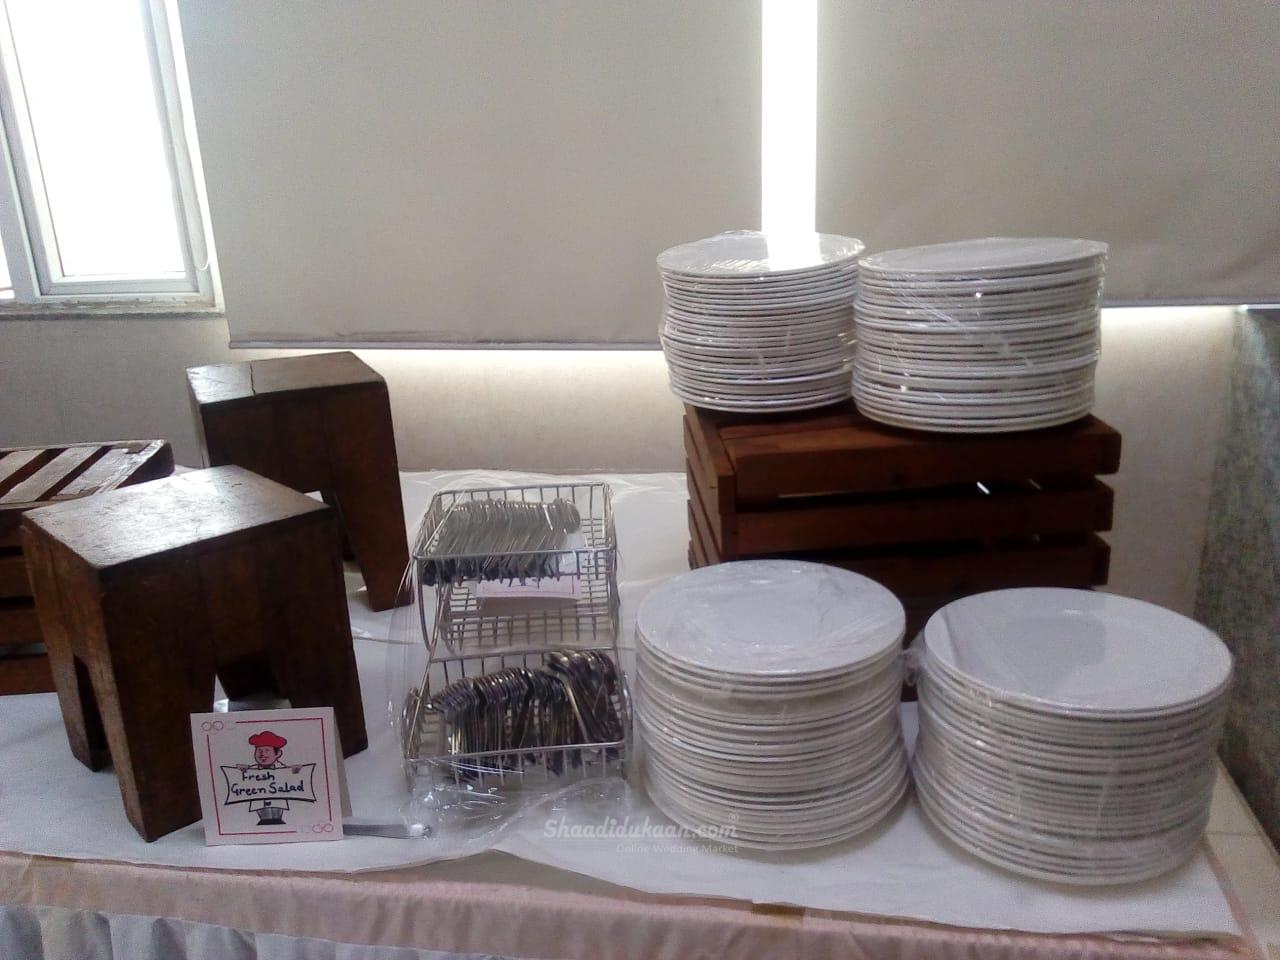 Rk tent house & Caterer